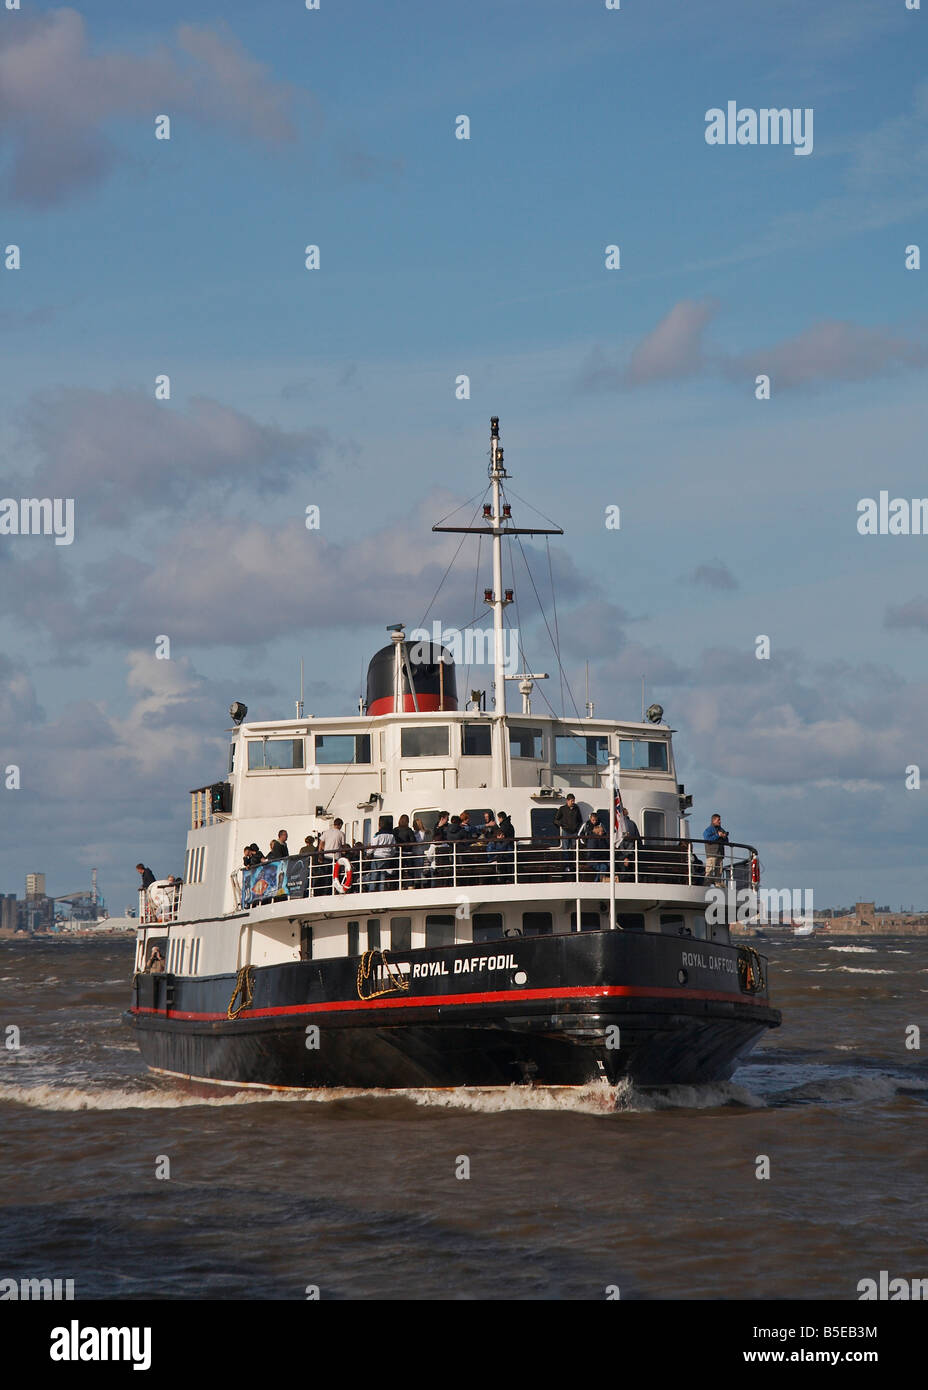 The Royal Daffodil, one of the Mersey Ferries crossing between Liverpool and the Wirral peninsula - Stock Image